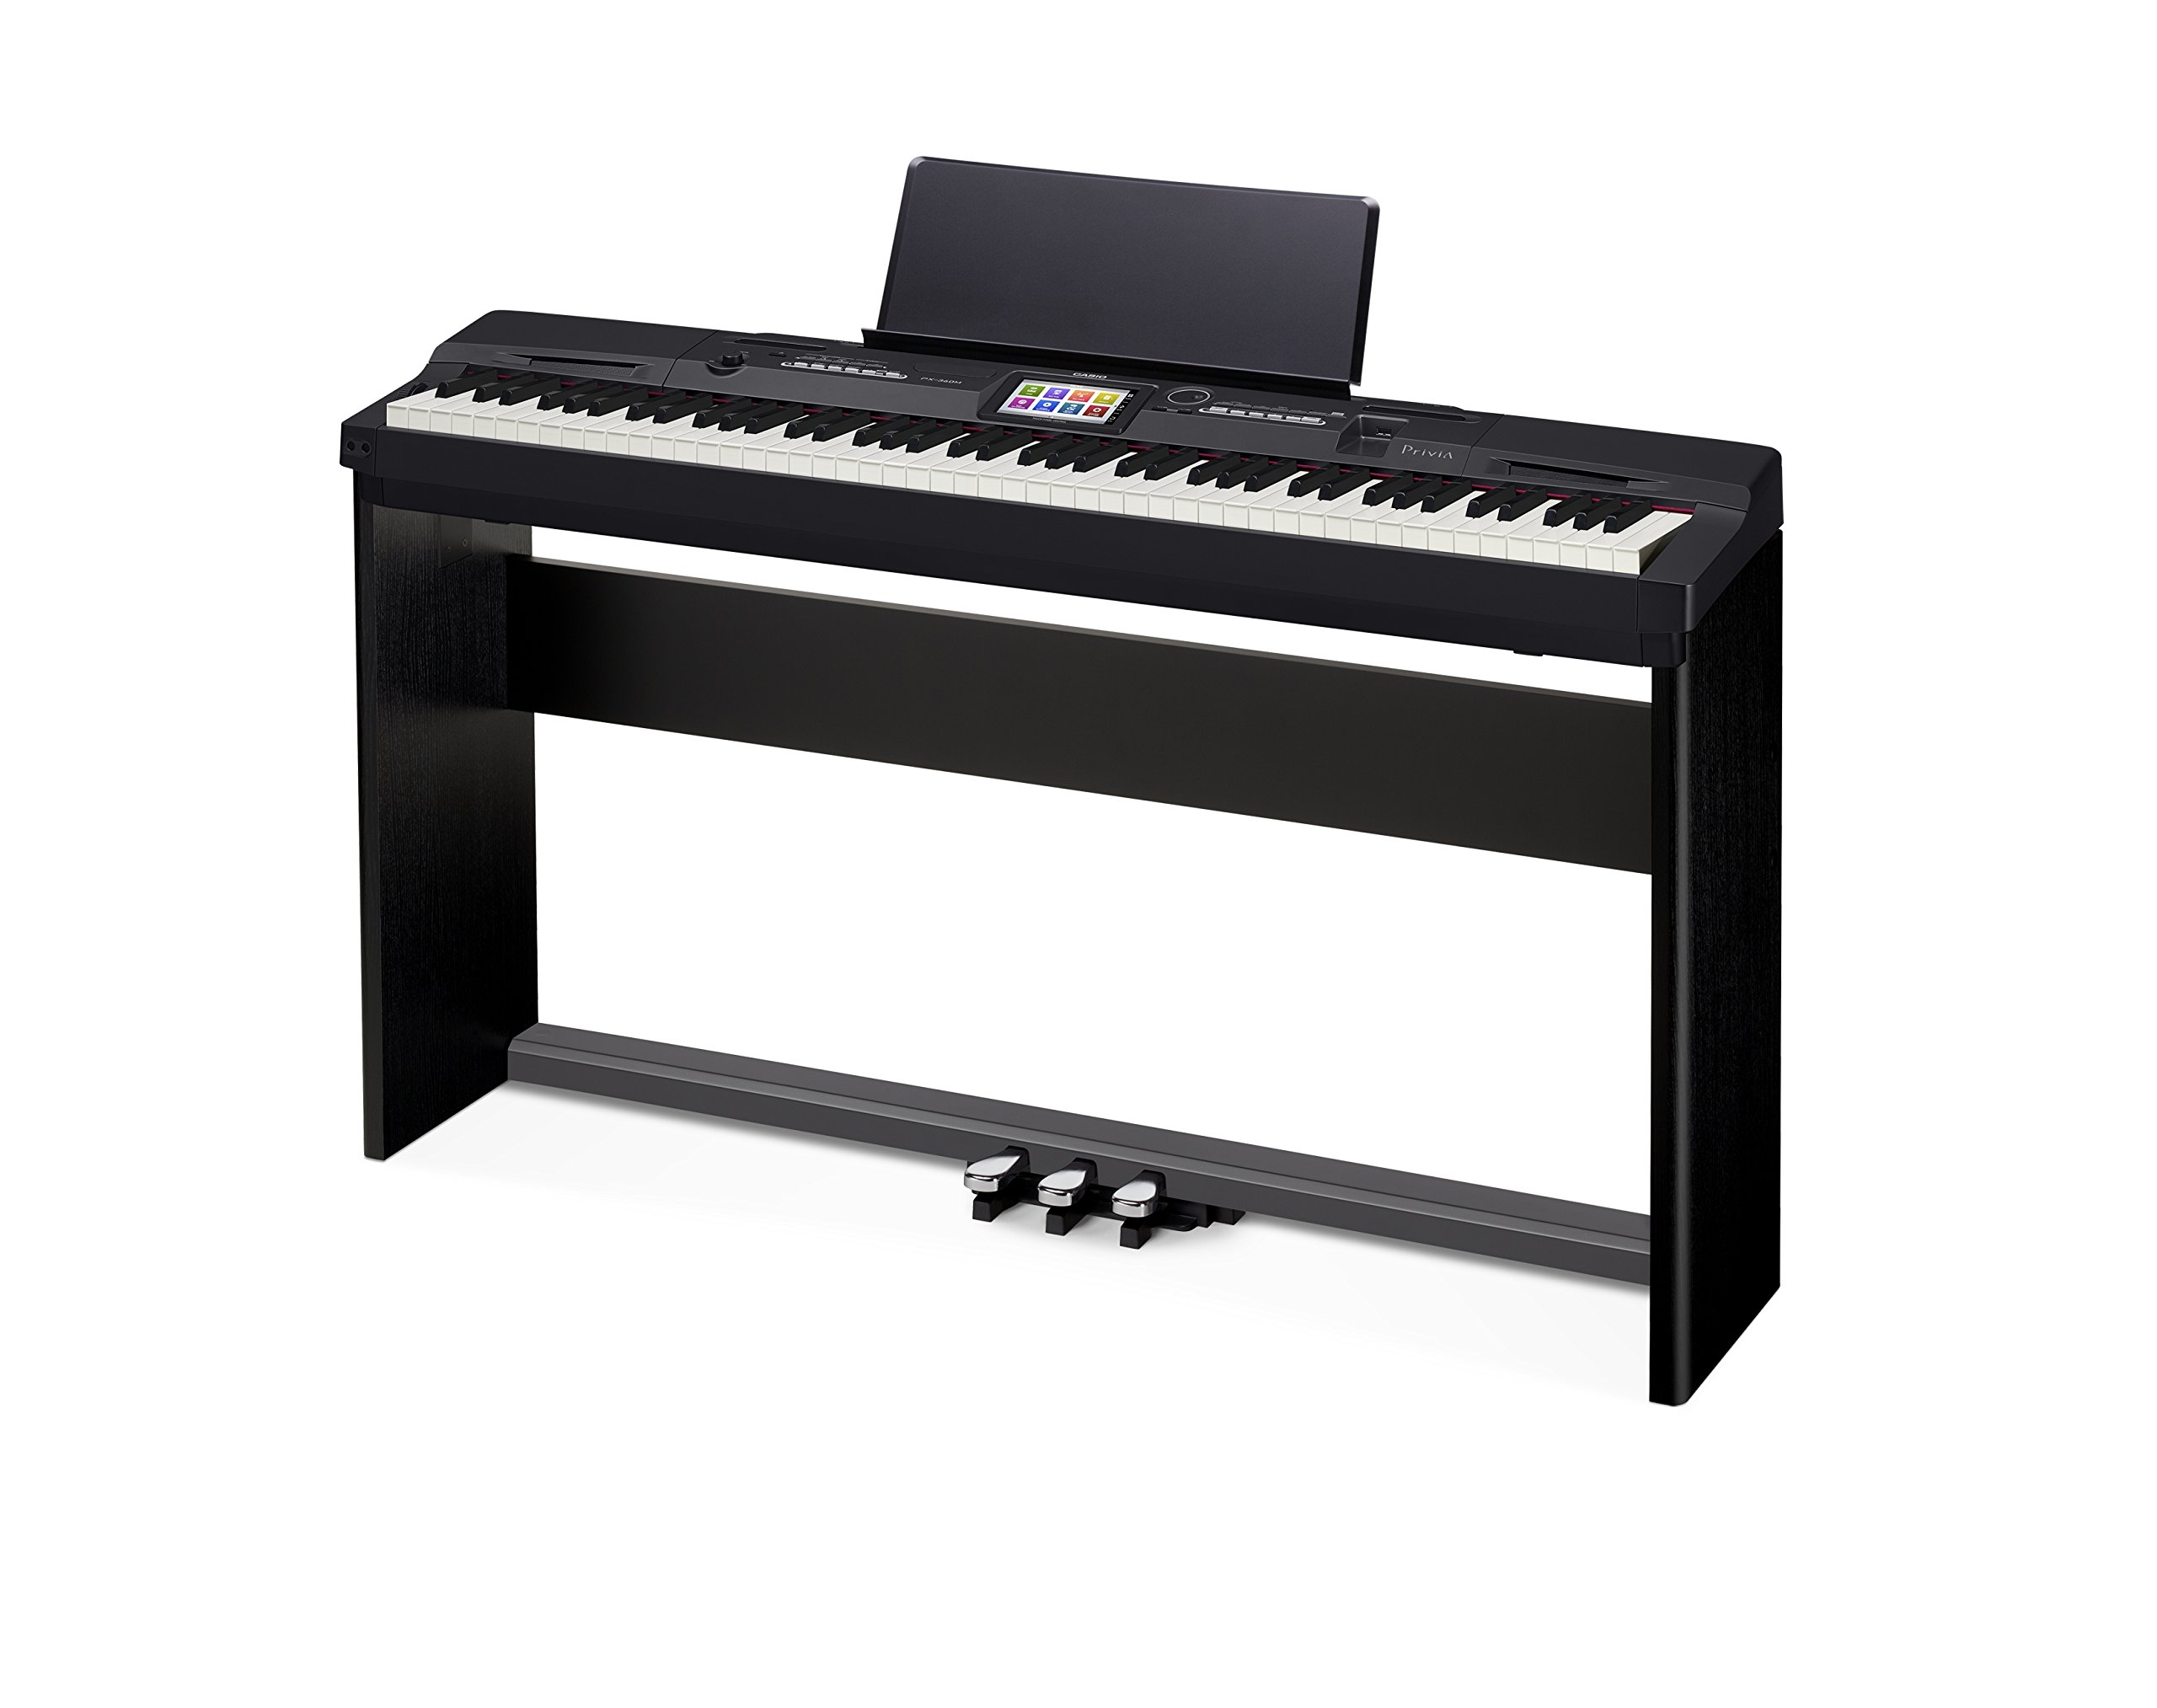 Casio Privia PX-360 Digital Piano - Black Bundle with CS-67 Stand, SP-33 Pedal, Furniture Bench, Instructional Book, Austin Bazaar Instructional DVD, and Polishing Cloth by Casio (Image #6)